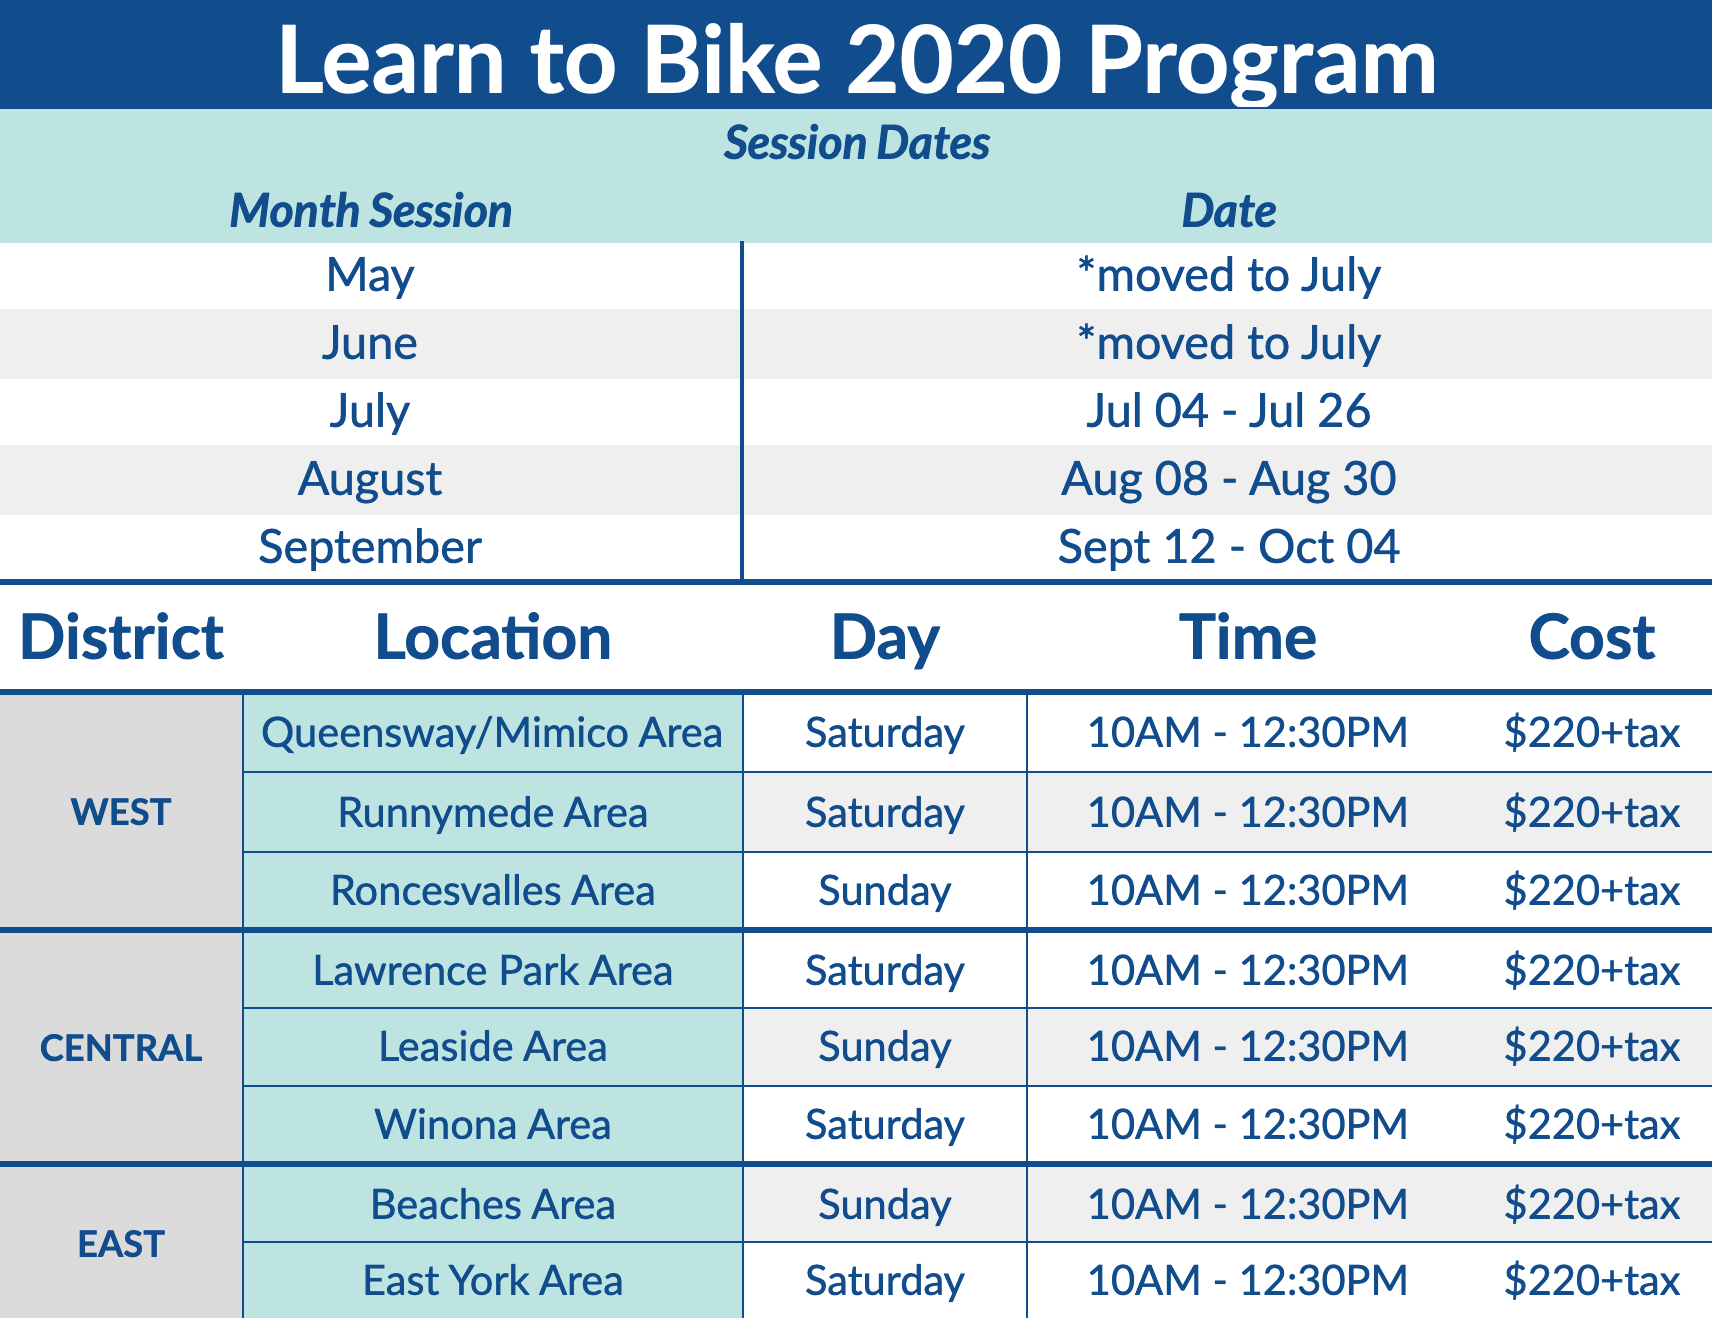 Learn to Bike programs in Toronto